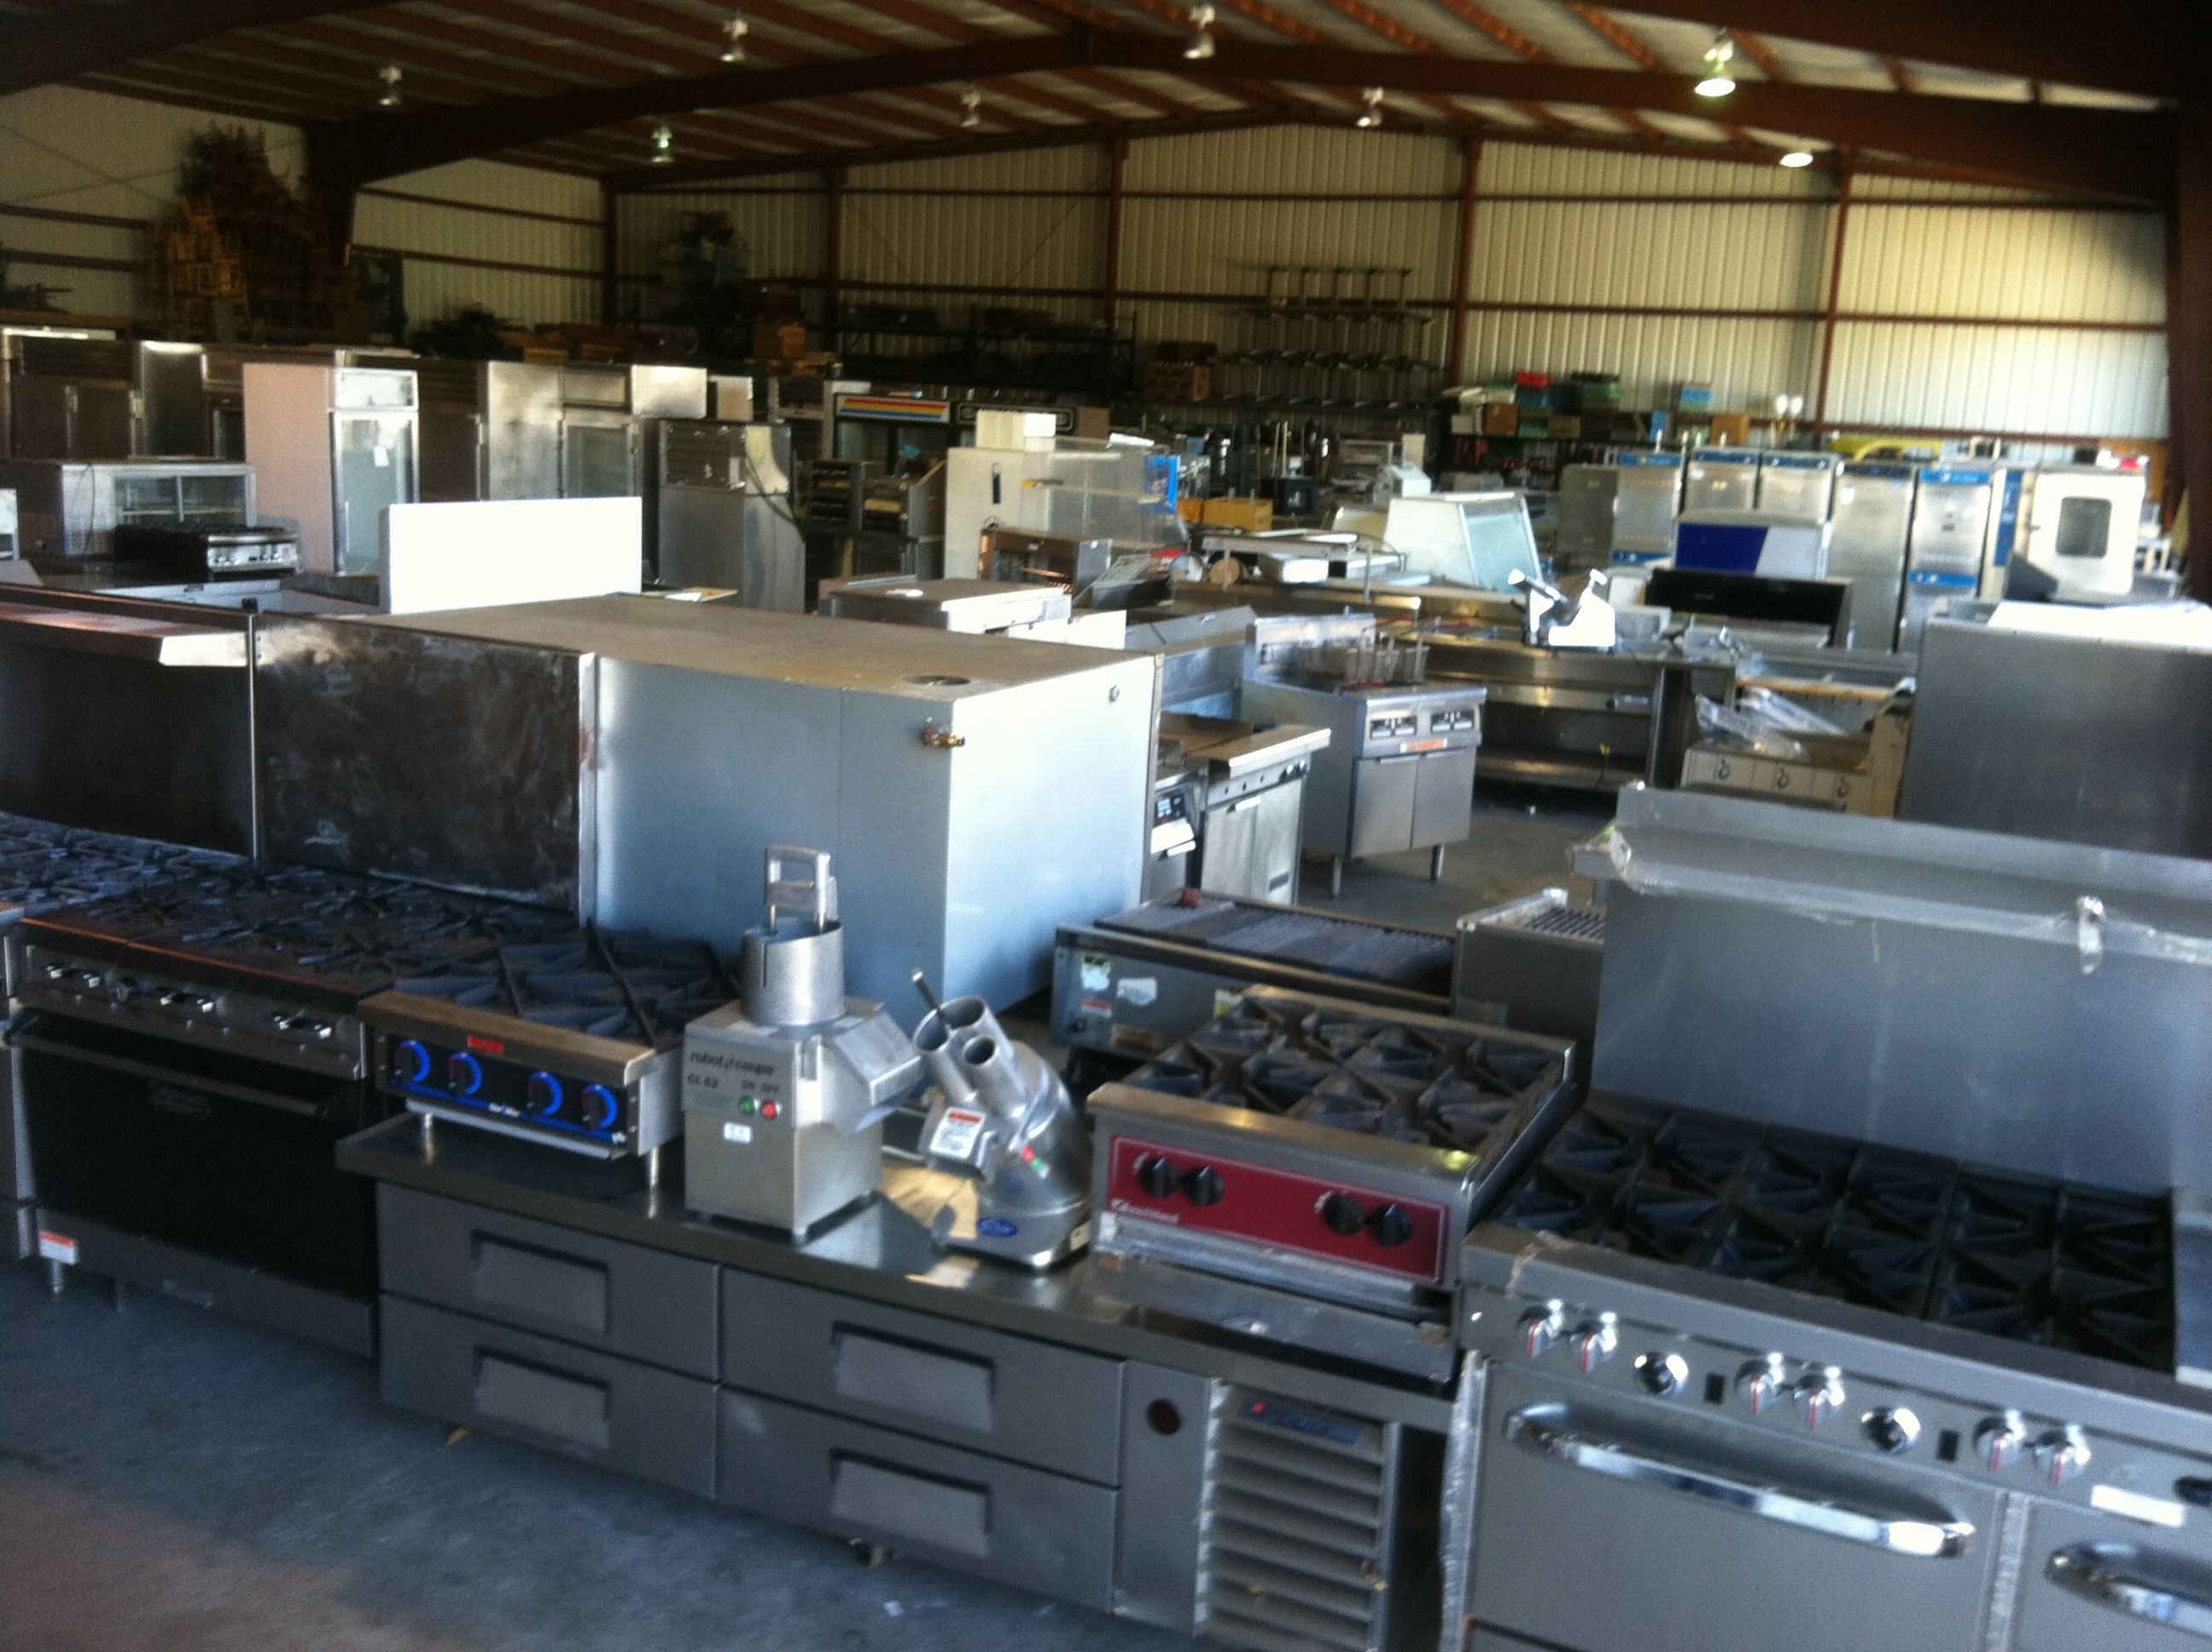 ice commercial foodservice restaurant kitchen used equipment